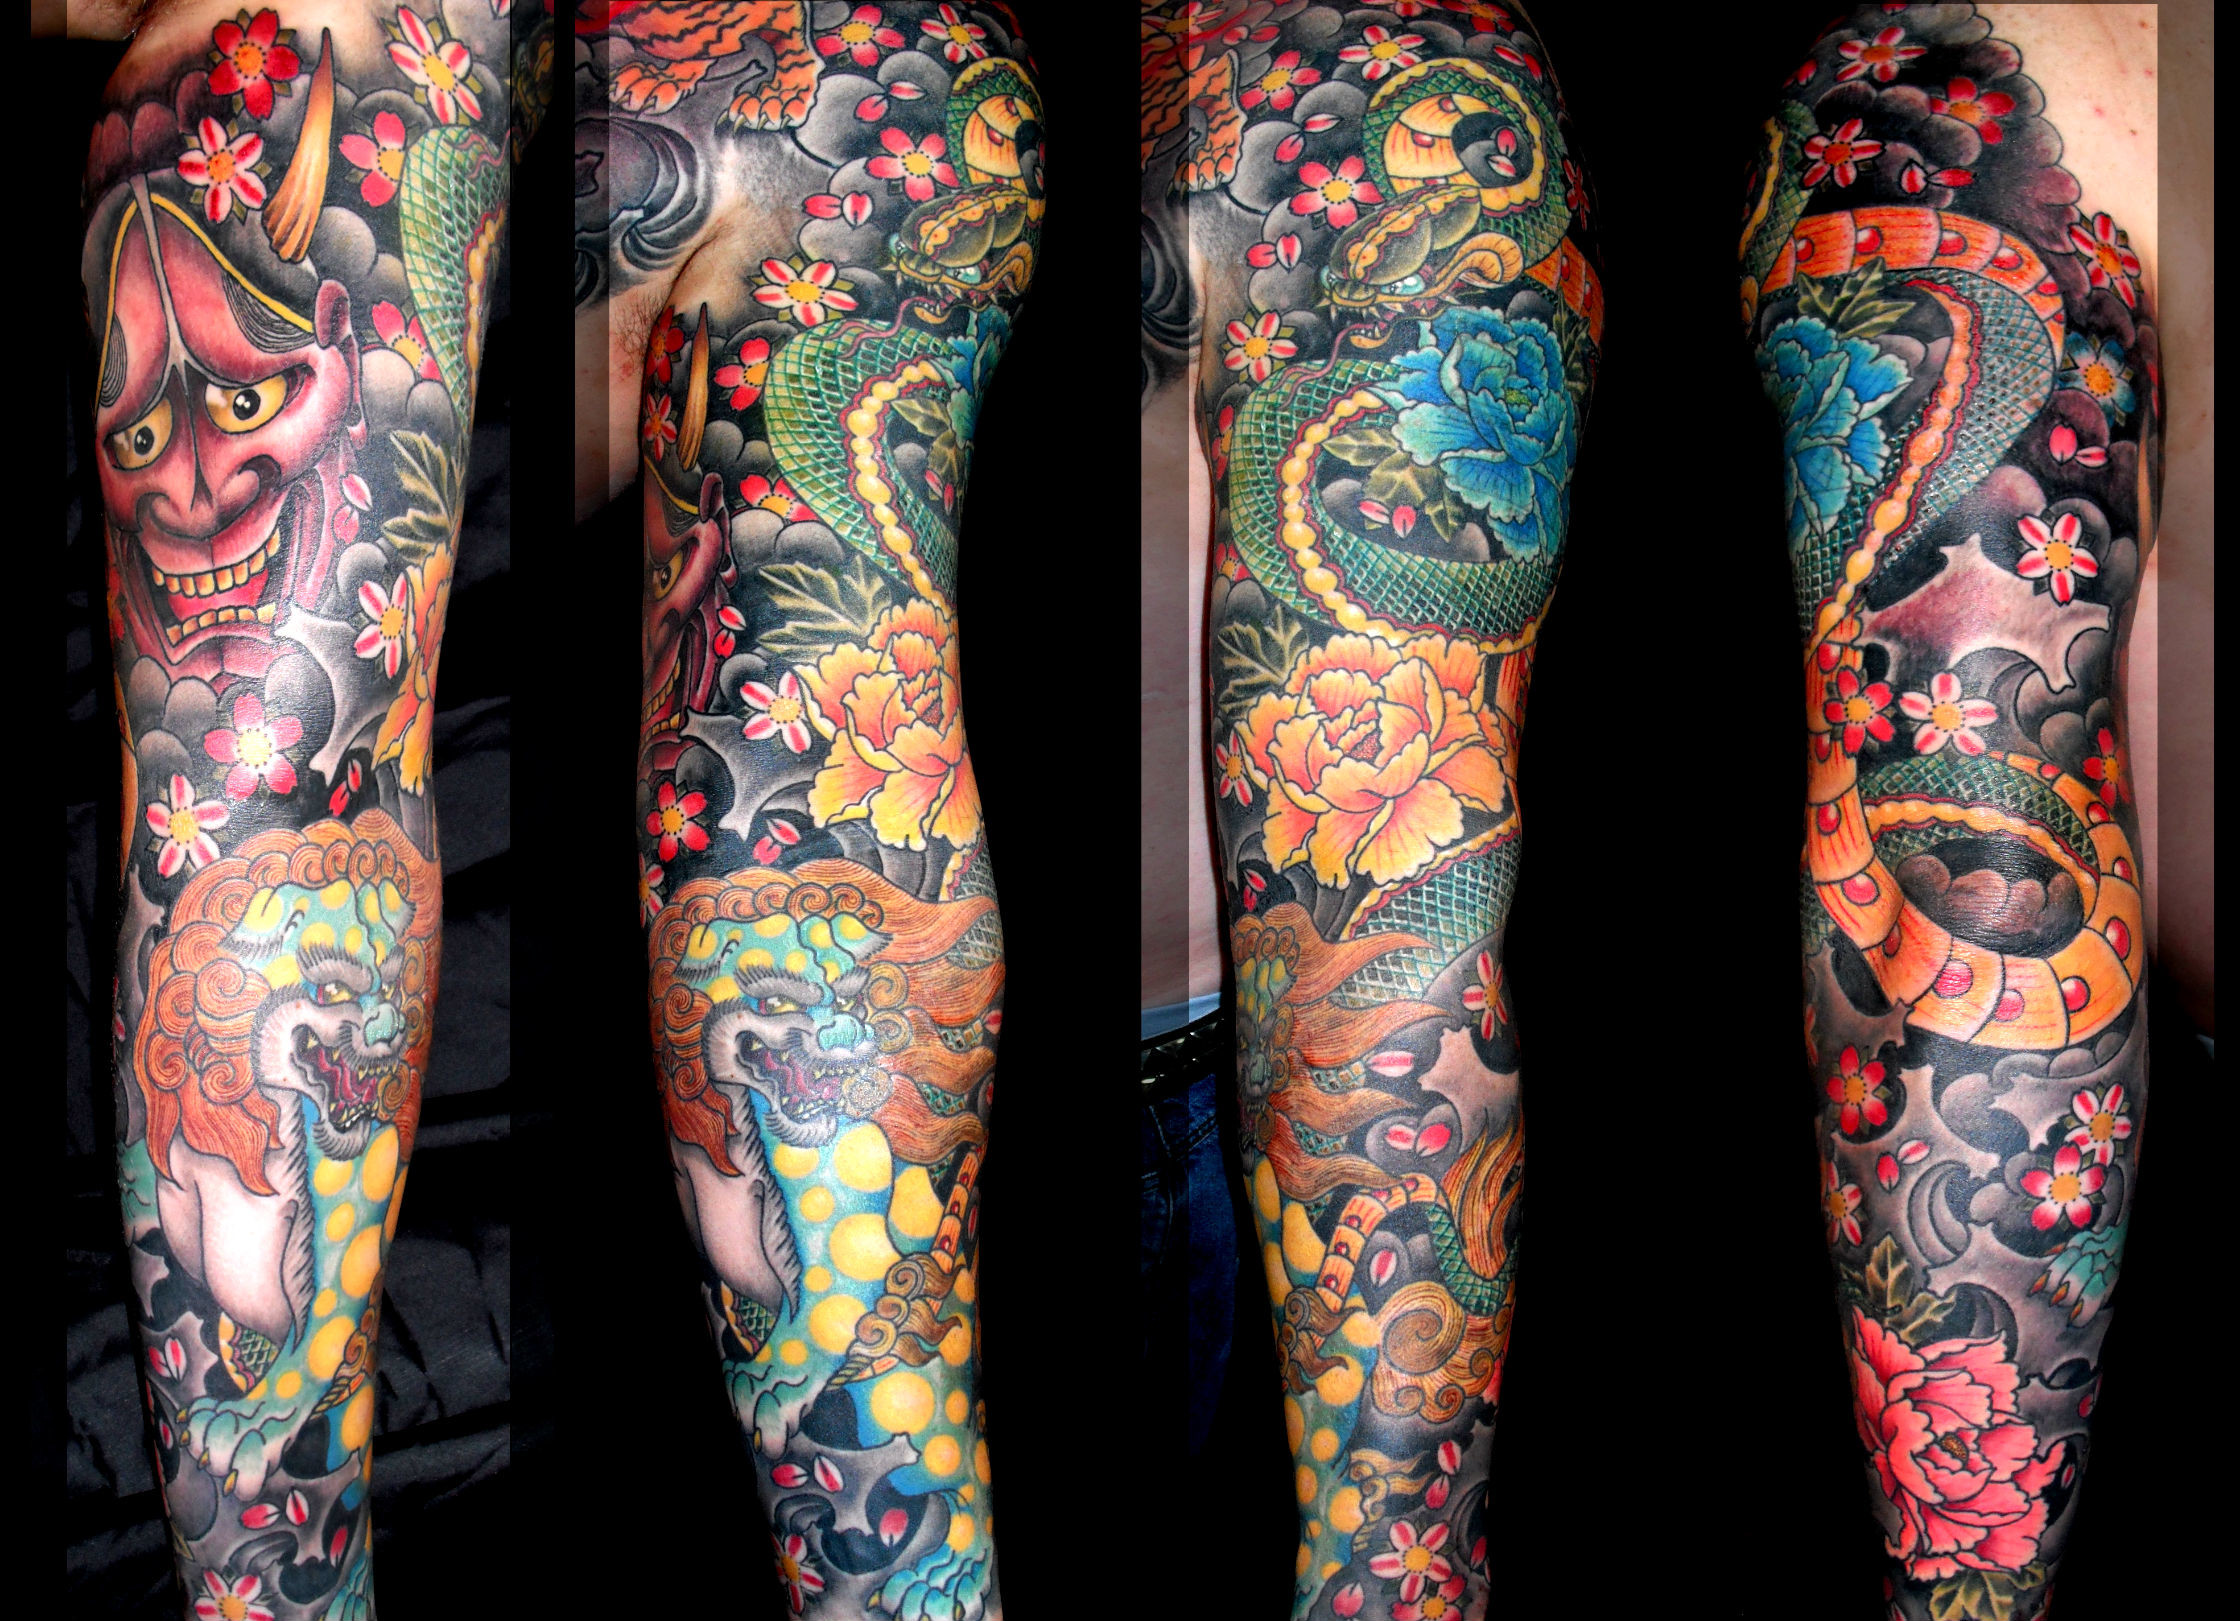 Res: 2240x1621, HD Wallpaper | Background Image ID:301859.  Artistic Tattoo